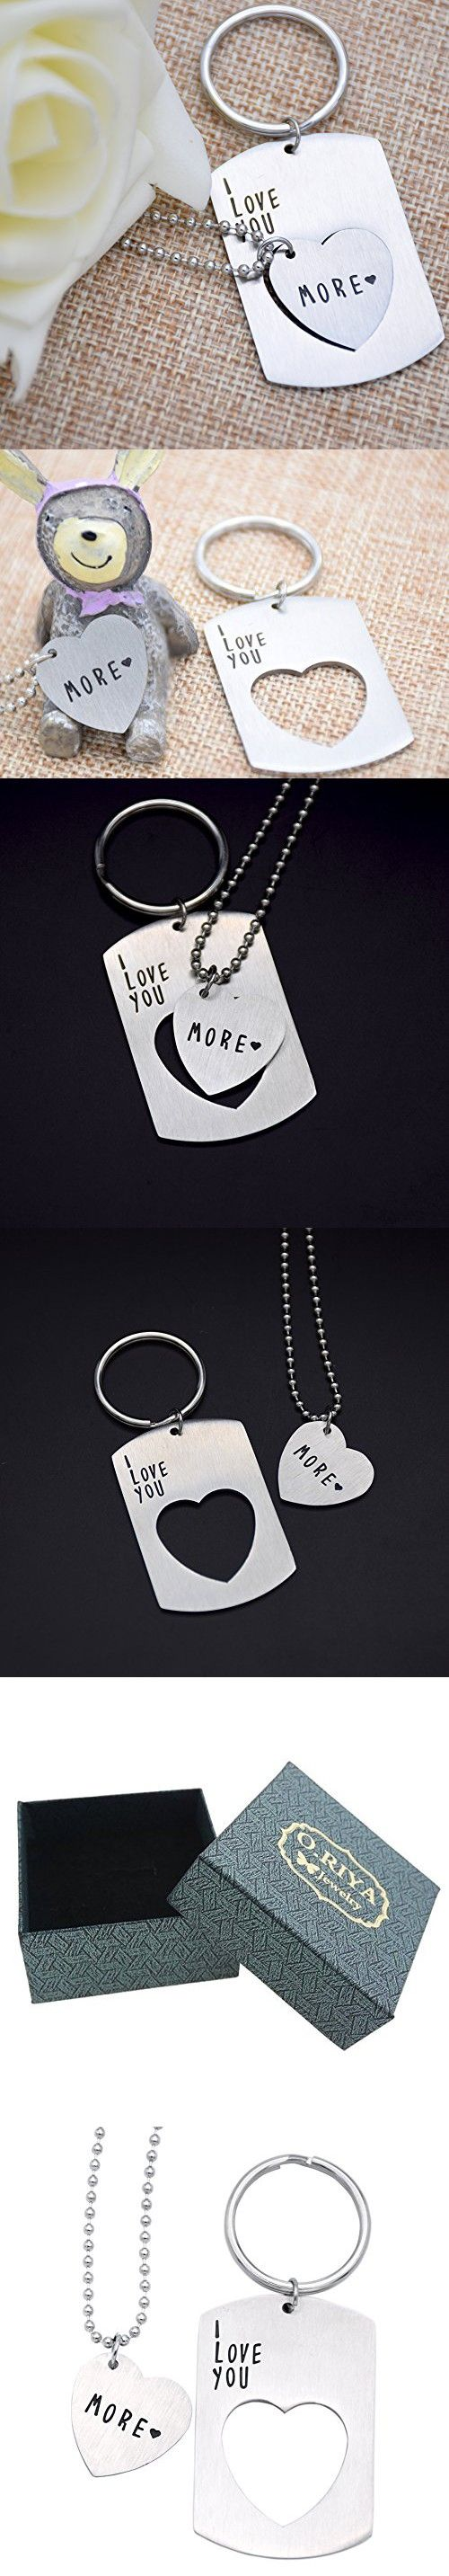 O.RIYA I love you more Keychain Necklace Stainless Steel - Anniversary Gifts For...